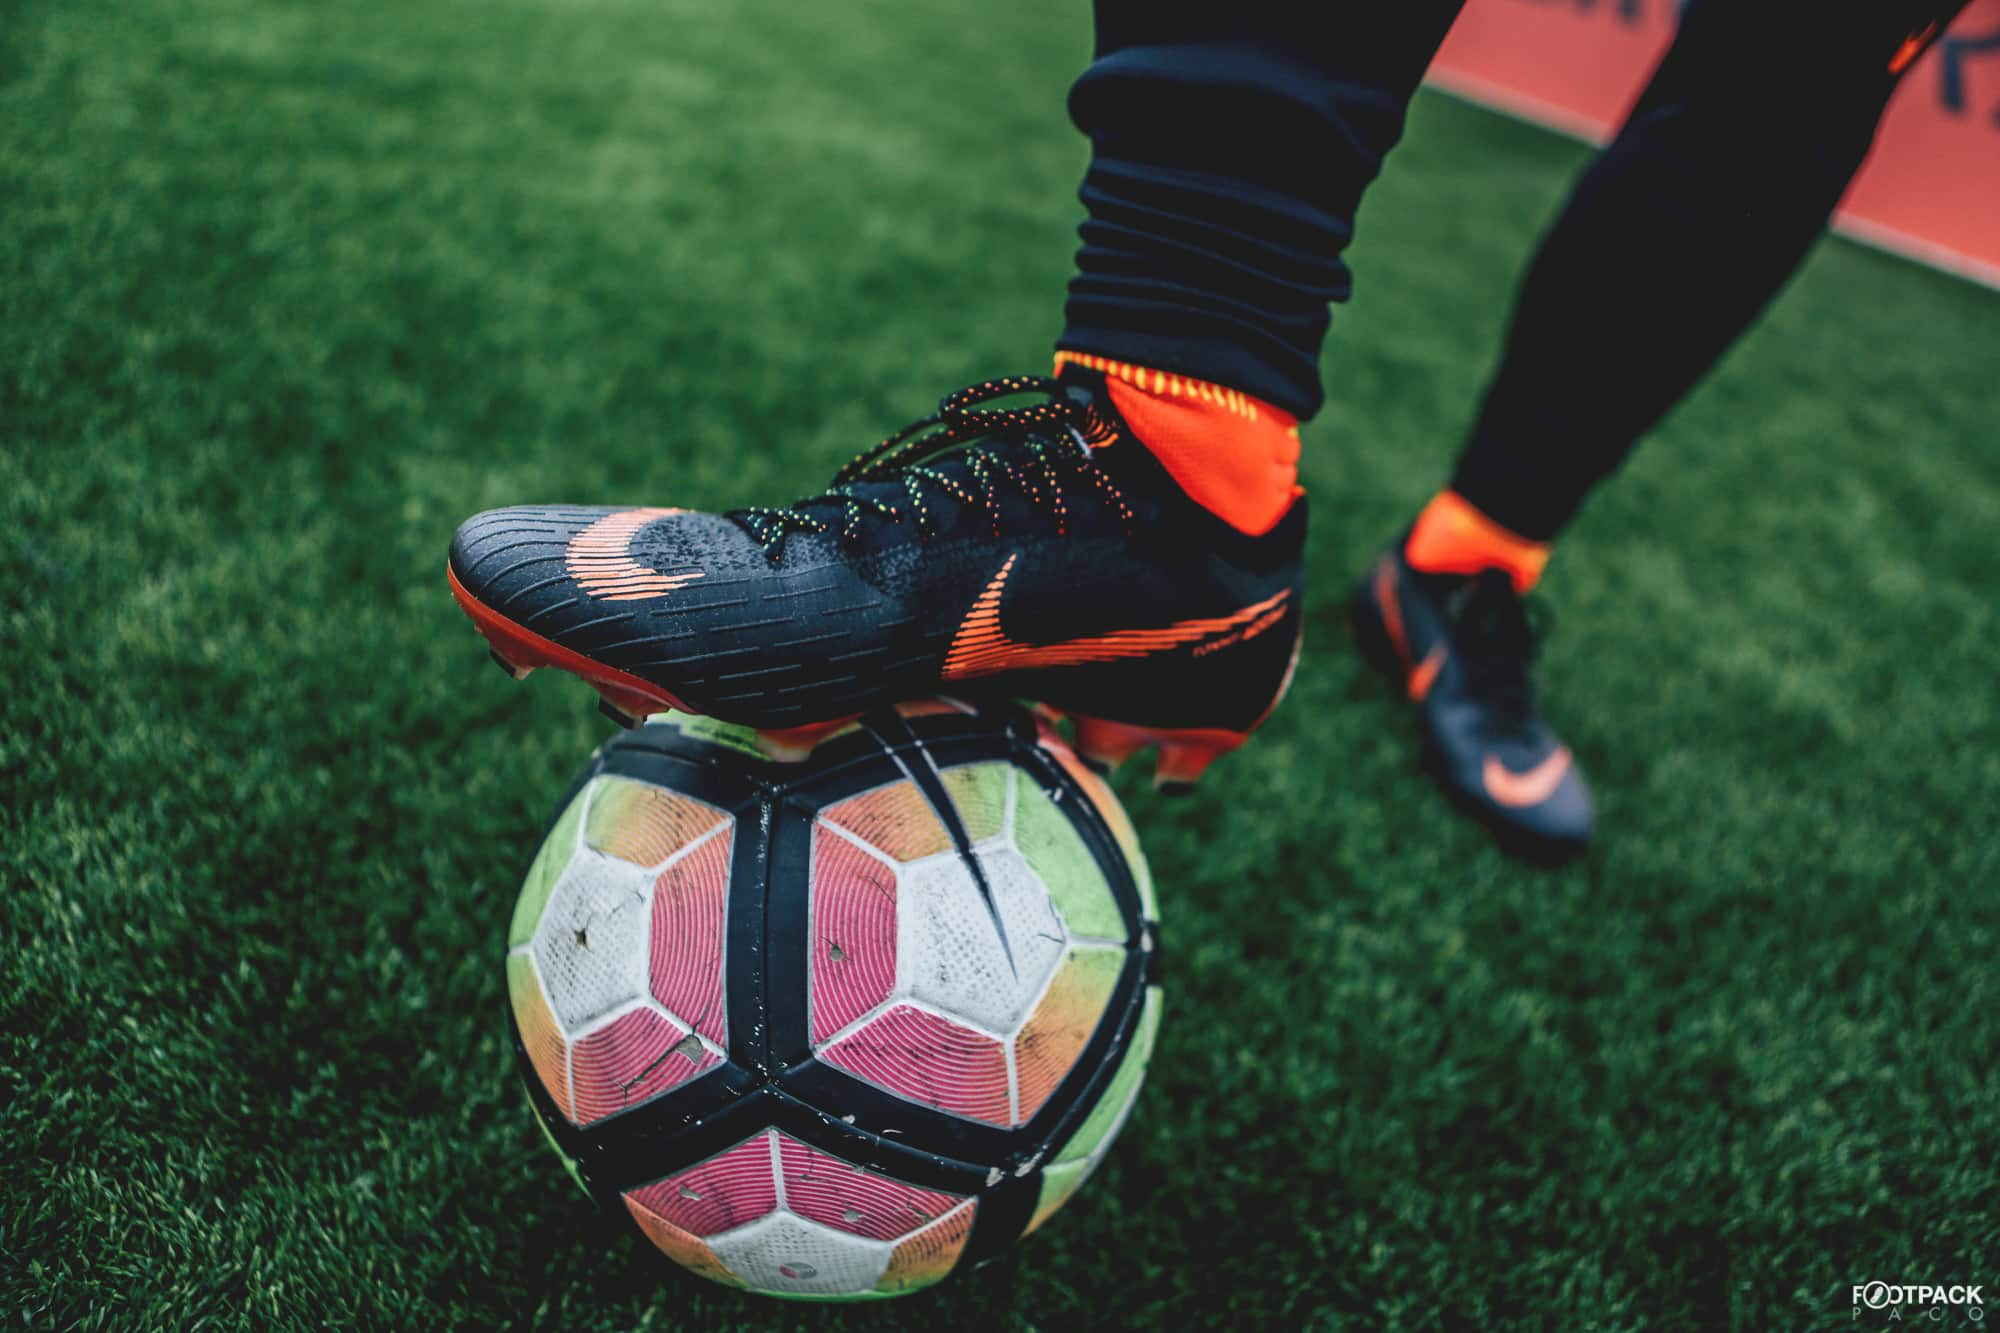 chaussure-football-Nike-Mercurial-360-Elite-test-Footpack-img4